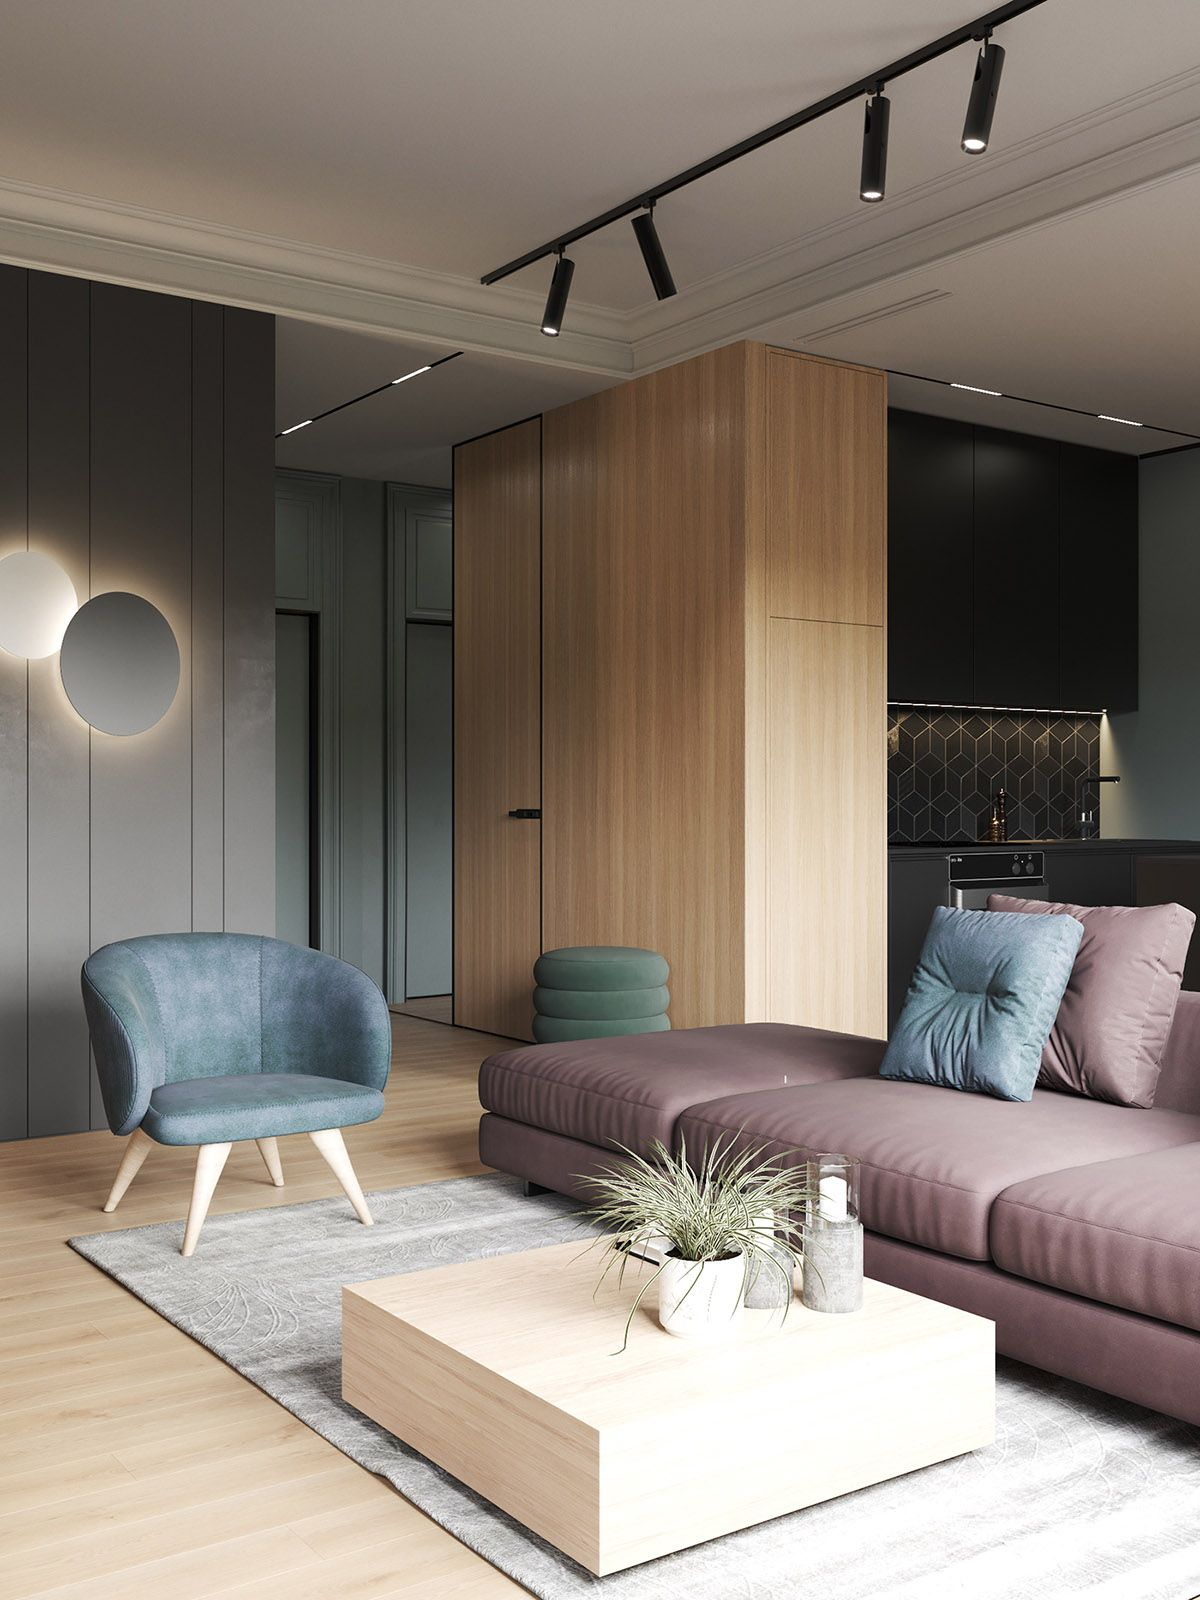 Home interior wall design interior design using moody colours and natural materials  houses